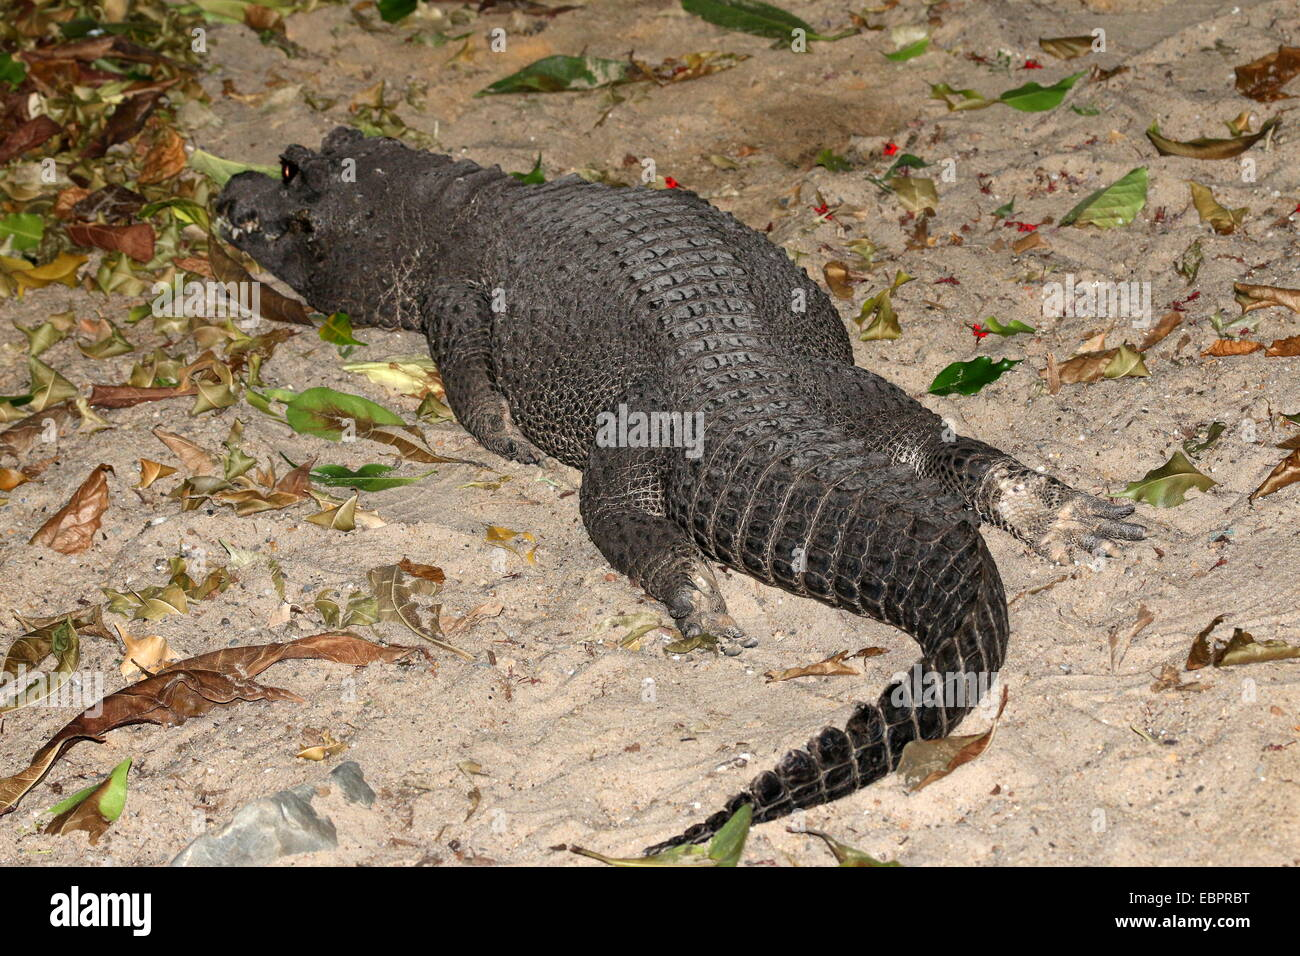 West-African Dwarf Crocodile (Osteolaemus tetraspis lazing neat the water's edge. a.k.a. Broad-snouted or Bony crocodile. Stock Photo